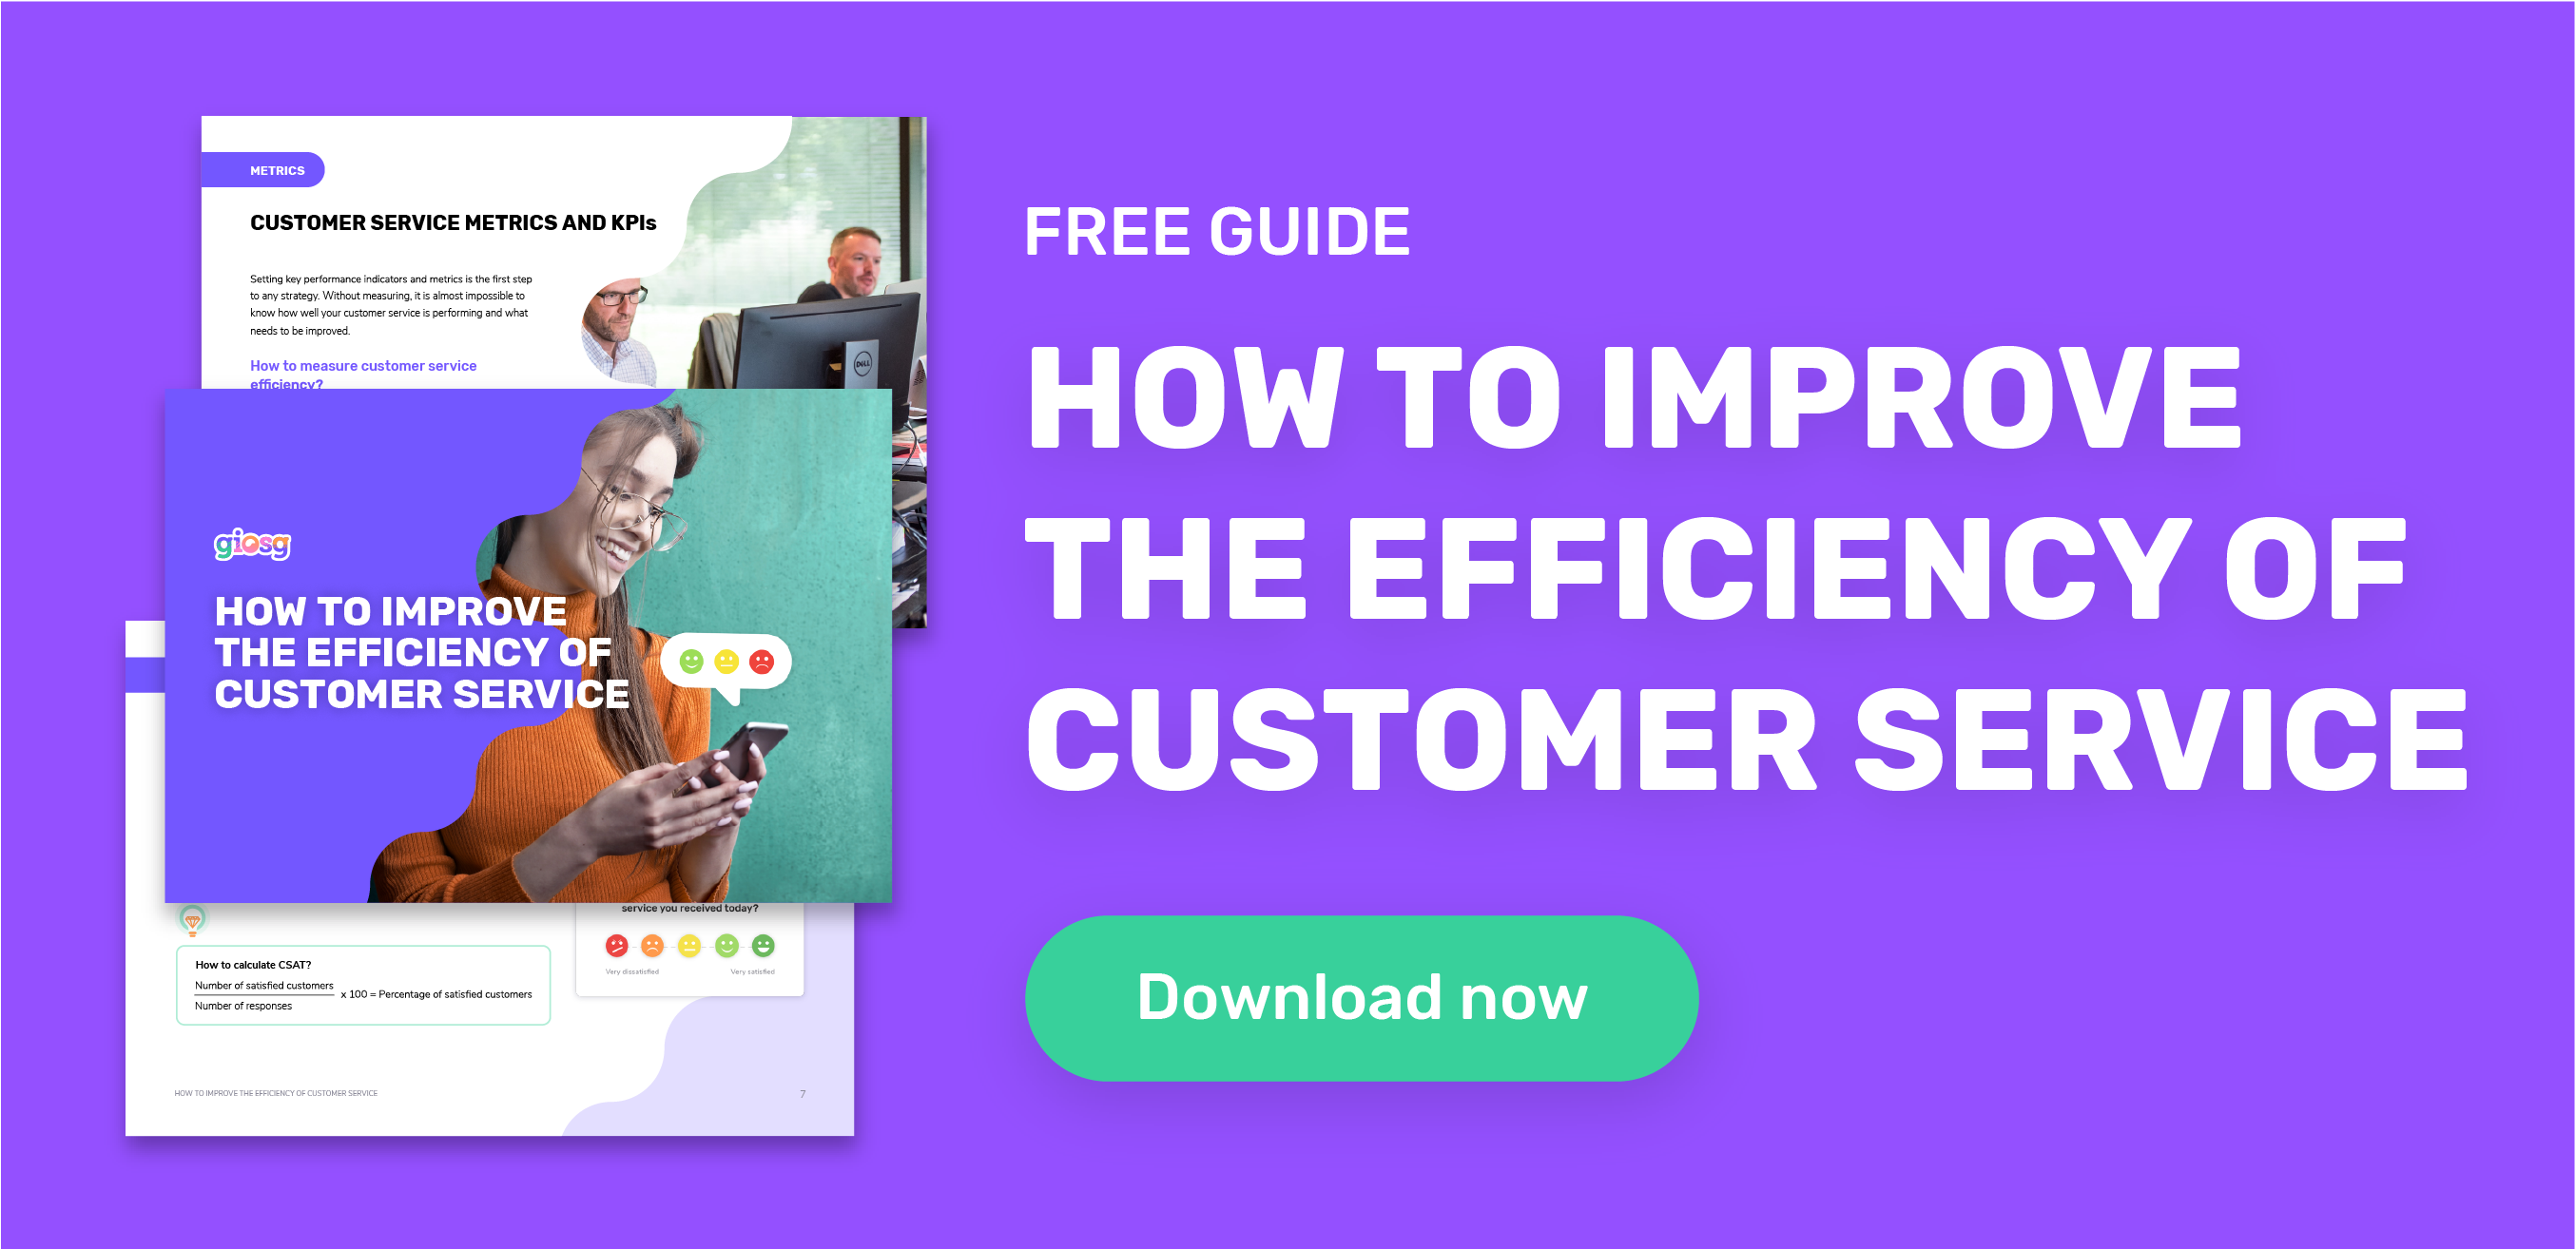 Download customer service efficiency guide now